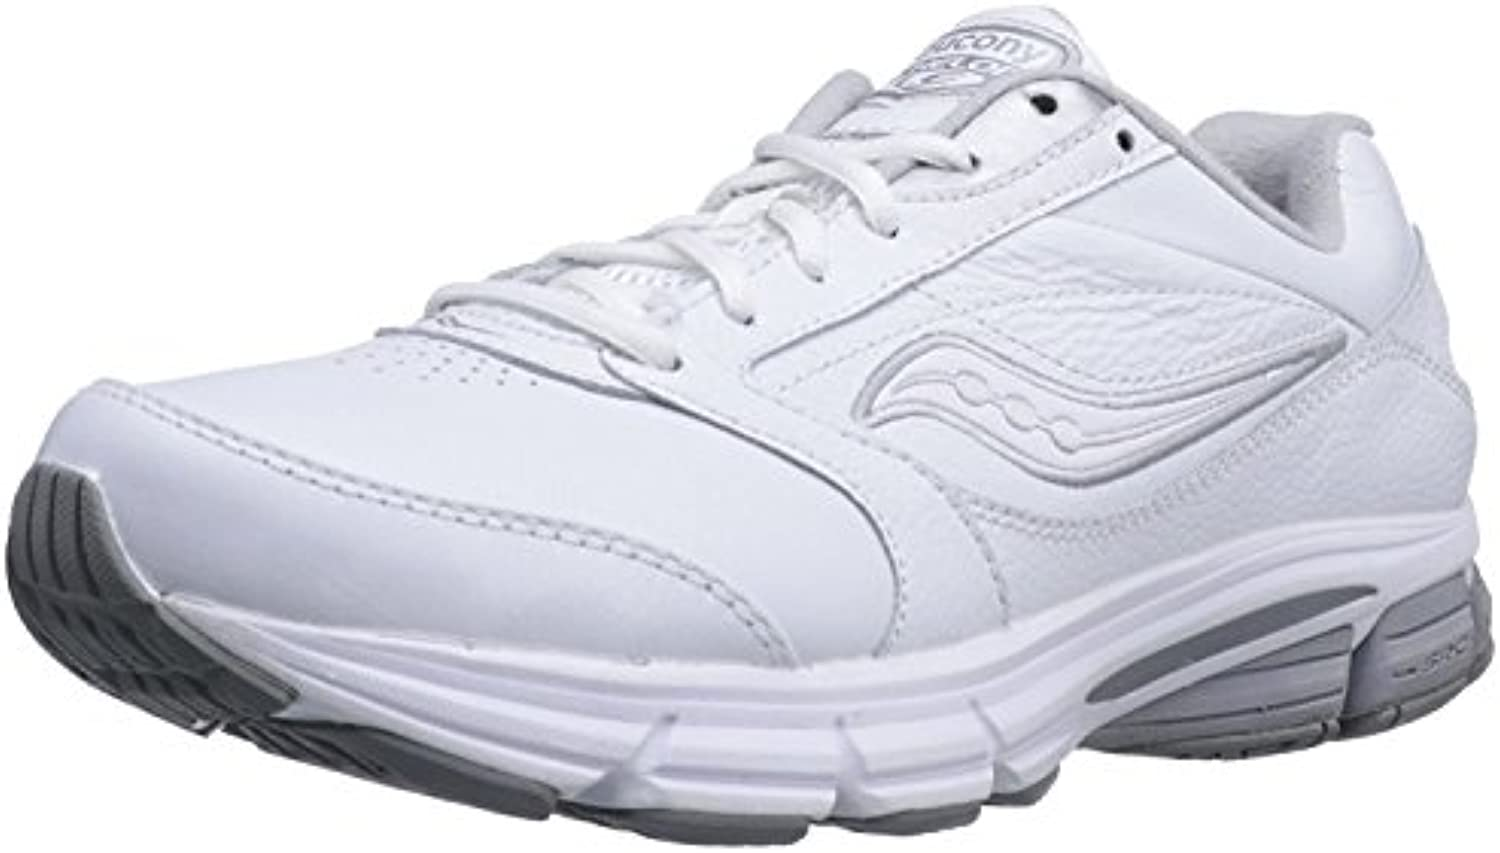 Saucony Men's Echelon LE2 Walking Shoe, Blanco, 40.5 D(M) EU/6.5 D(M) UK